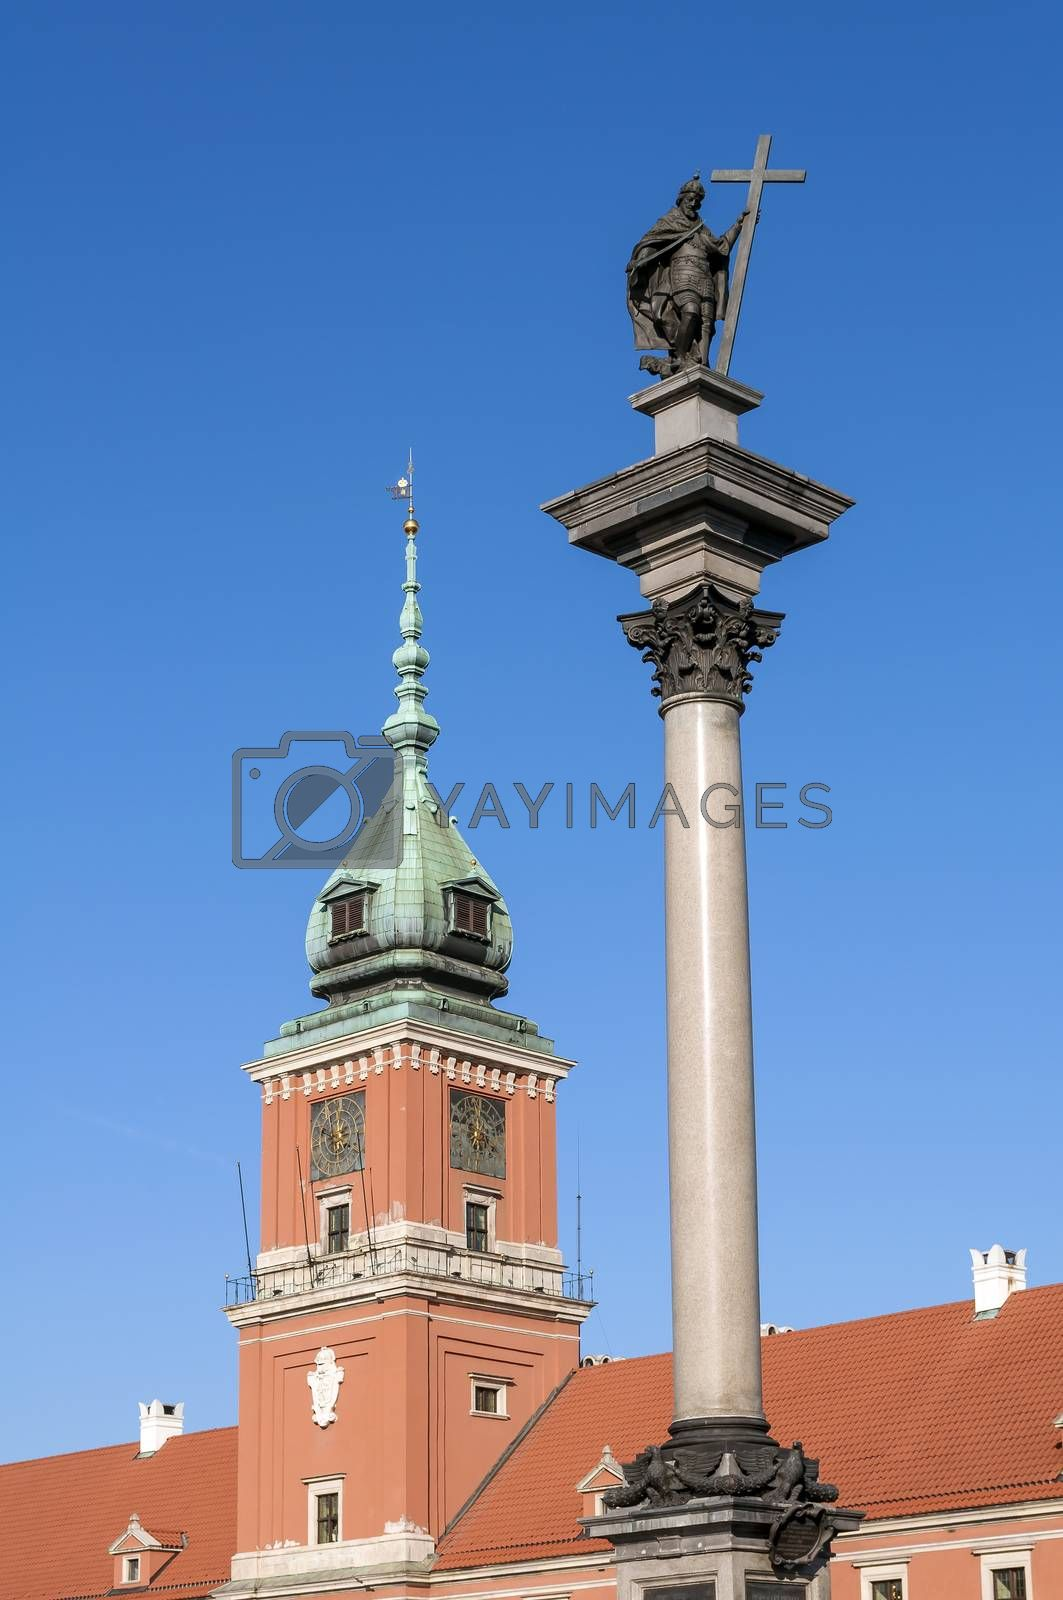 Royalty free image of Warsaw Royal Castle. by FER737NG